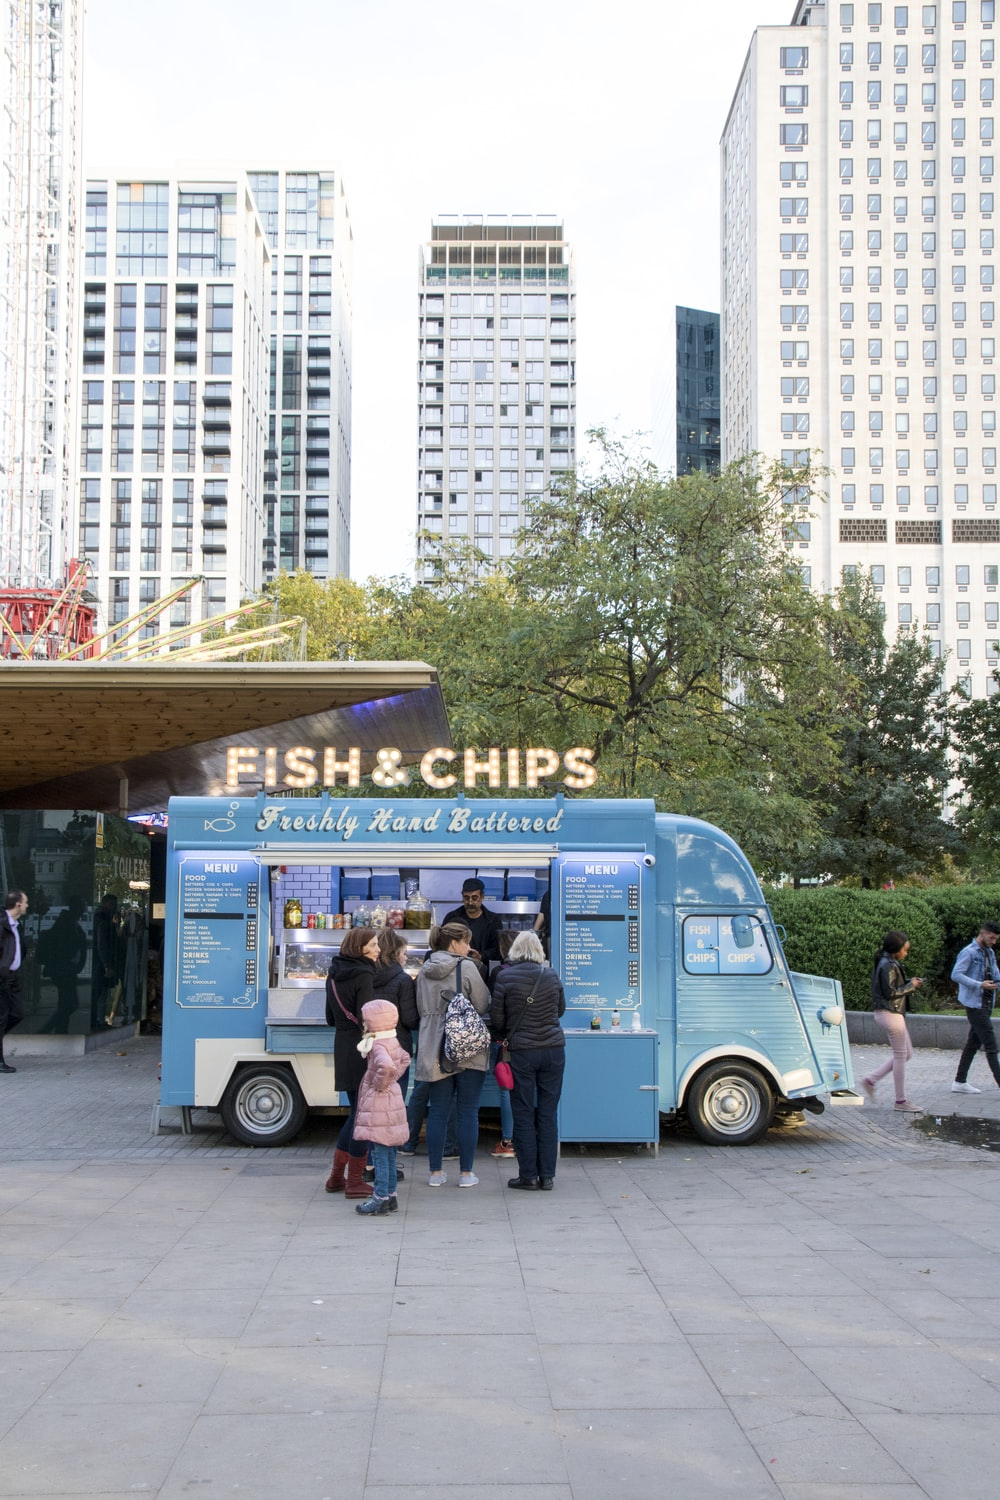 people beside Fish & Chips food truck at the city during day